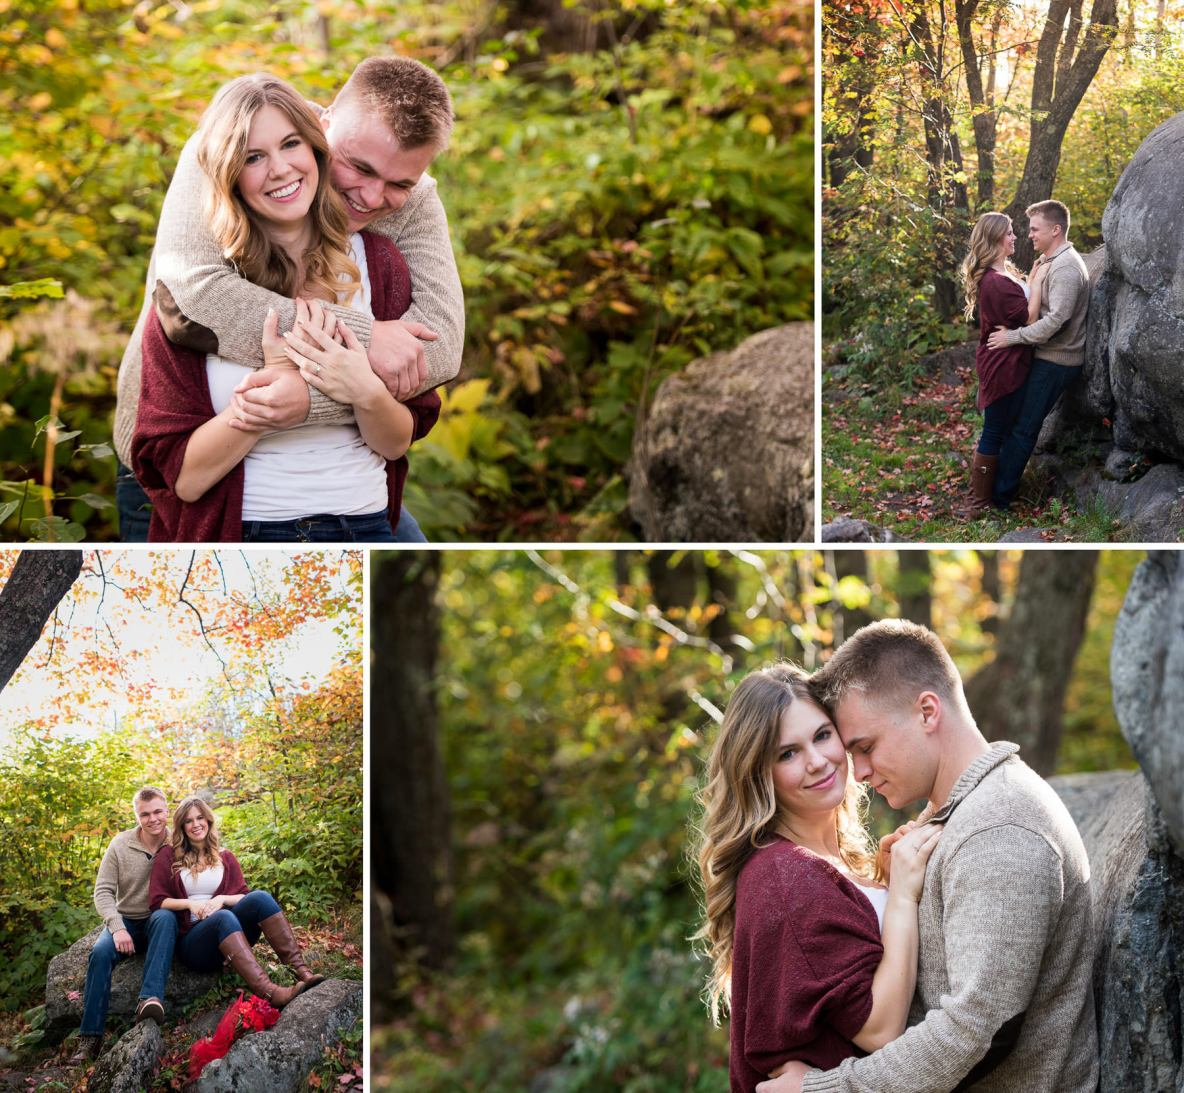 Engagement couple photos in fall colors; nature shot with trees and rocks.